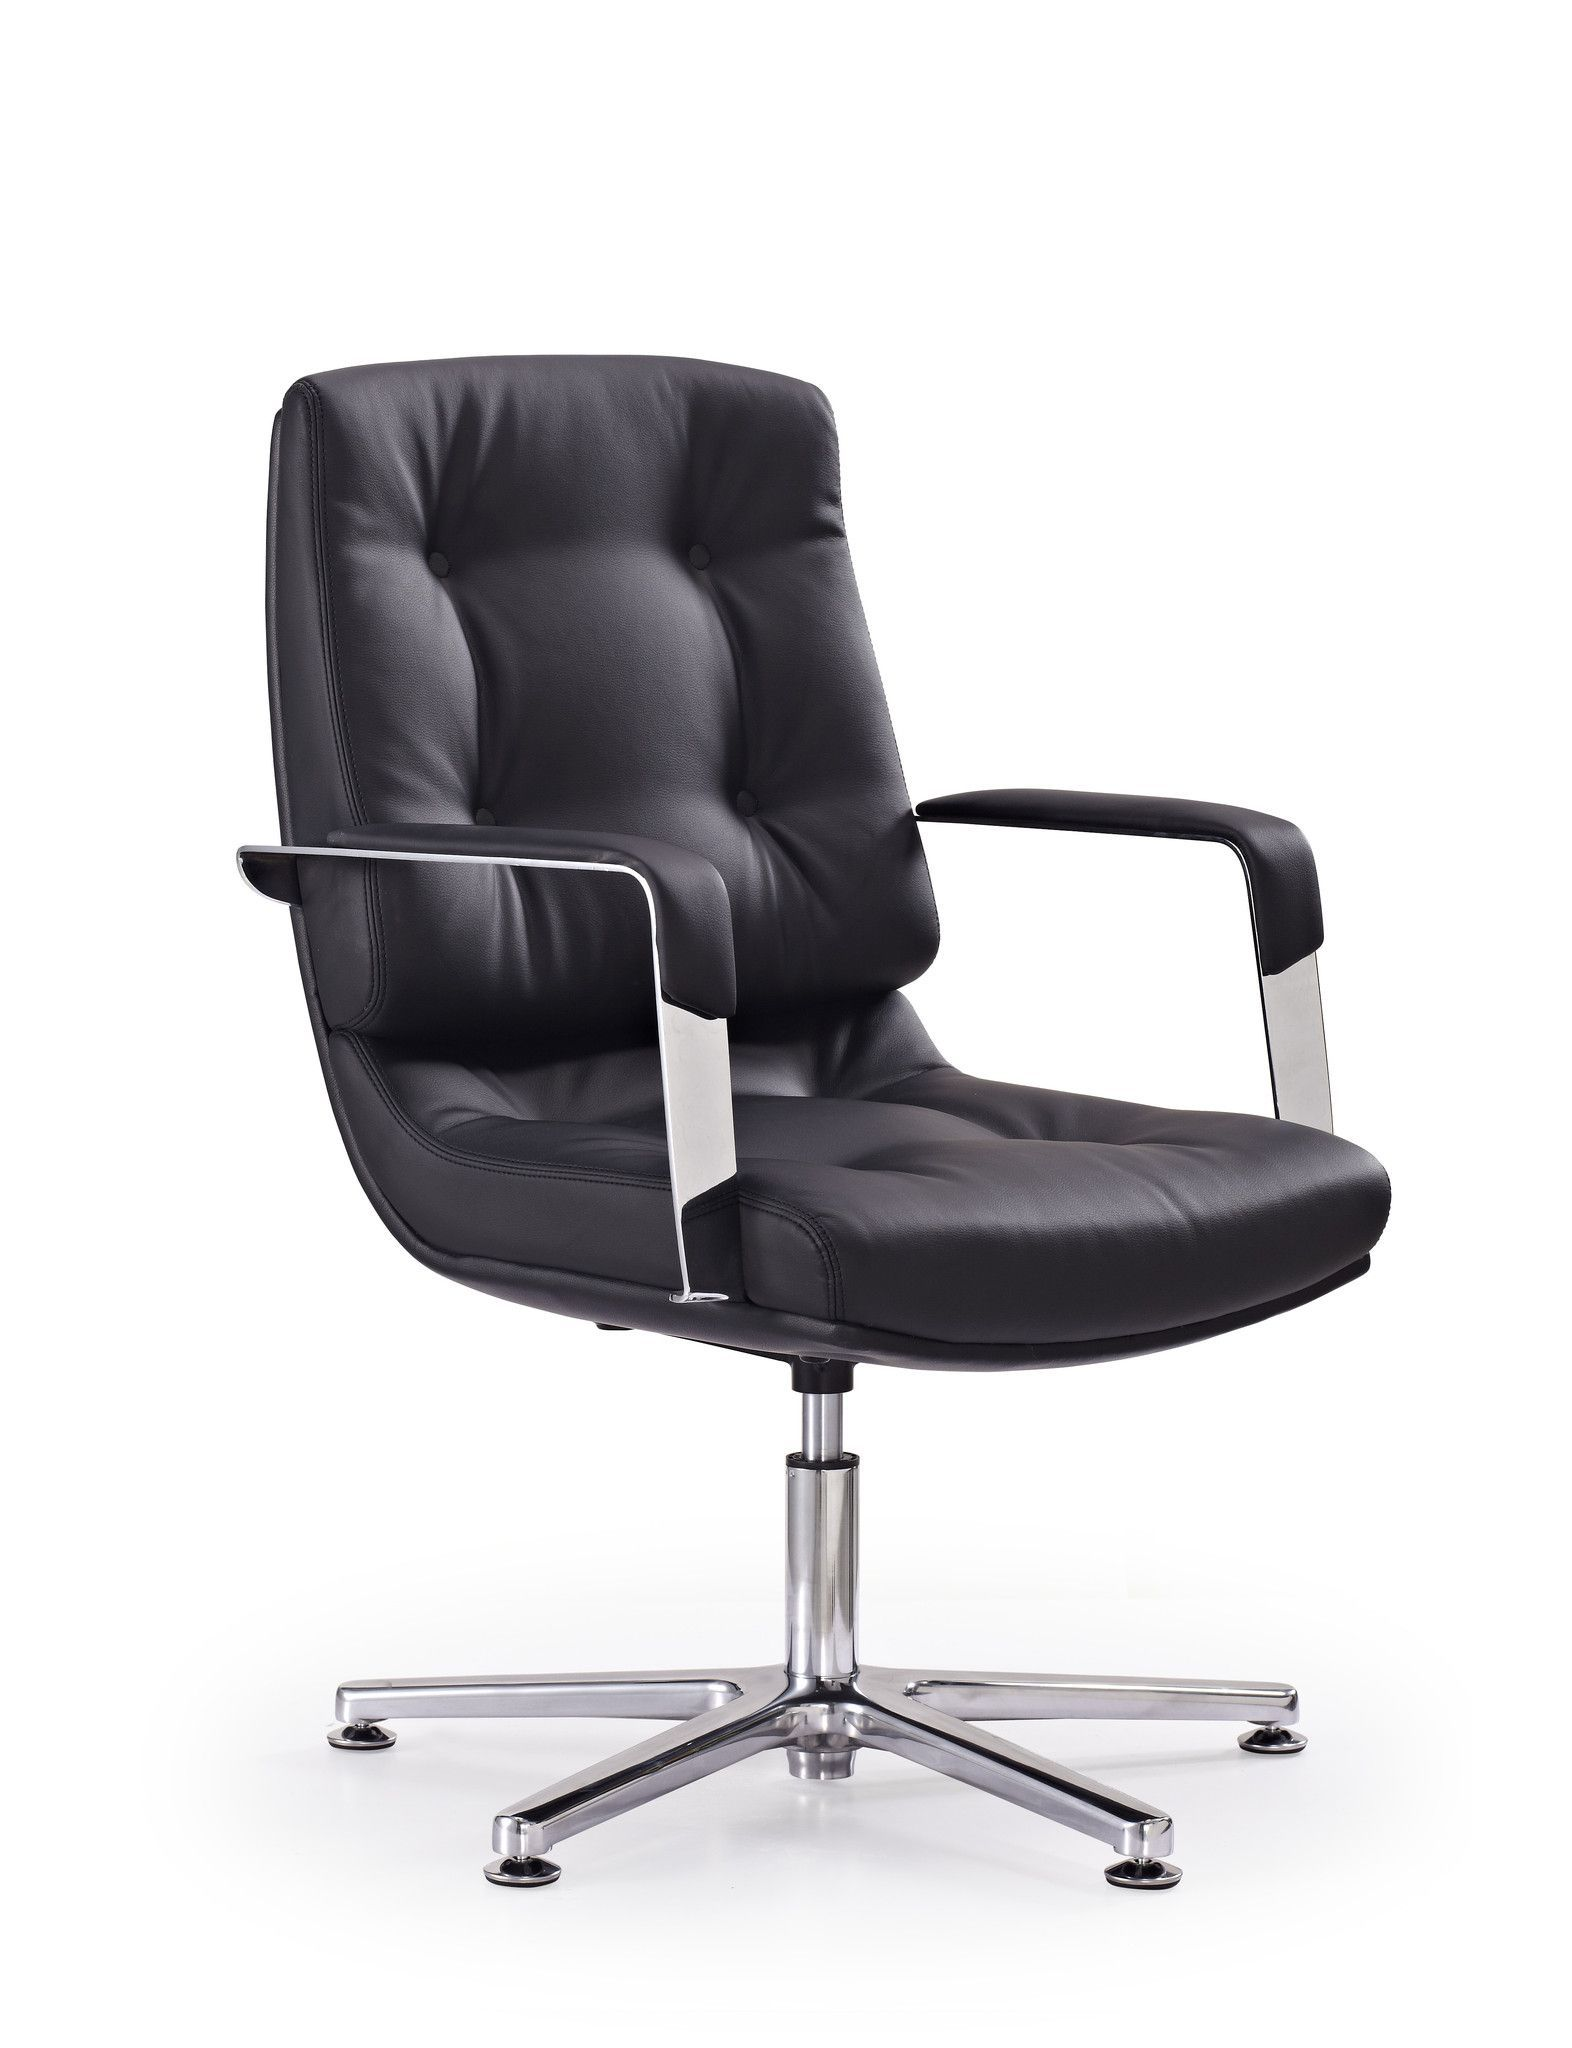 princeton visitor office chair black office chairs pinterest